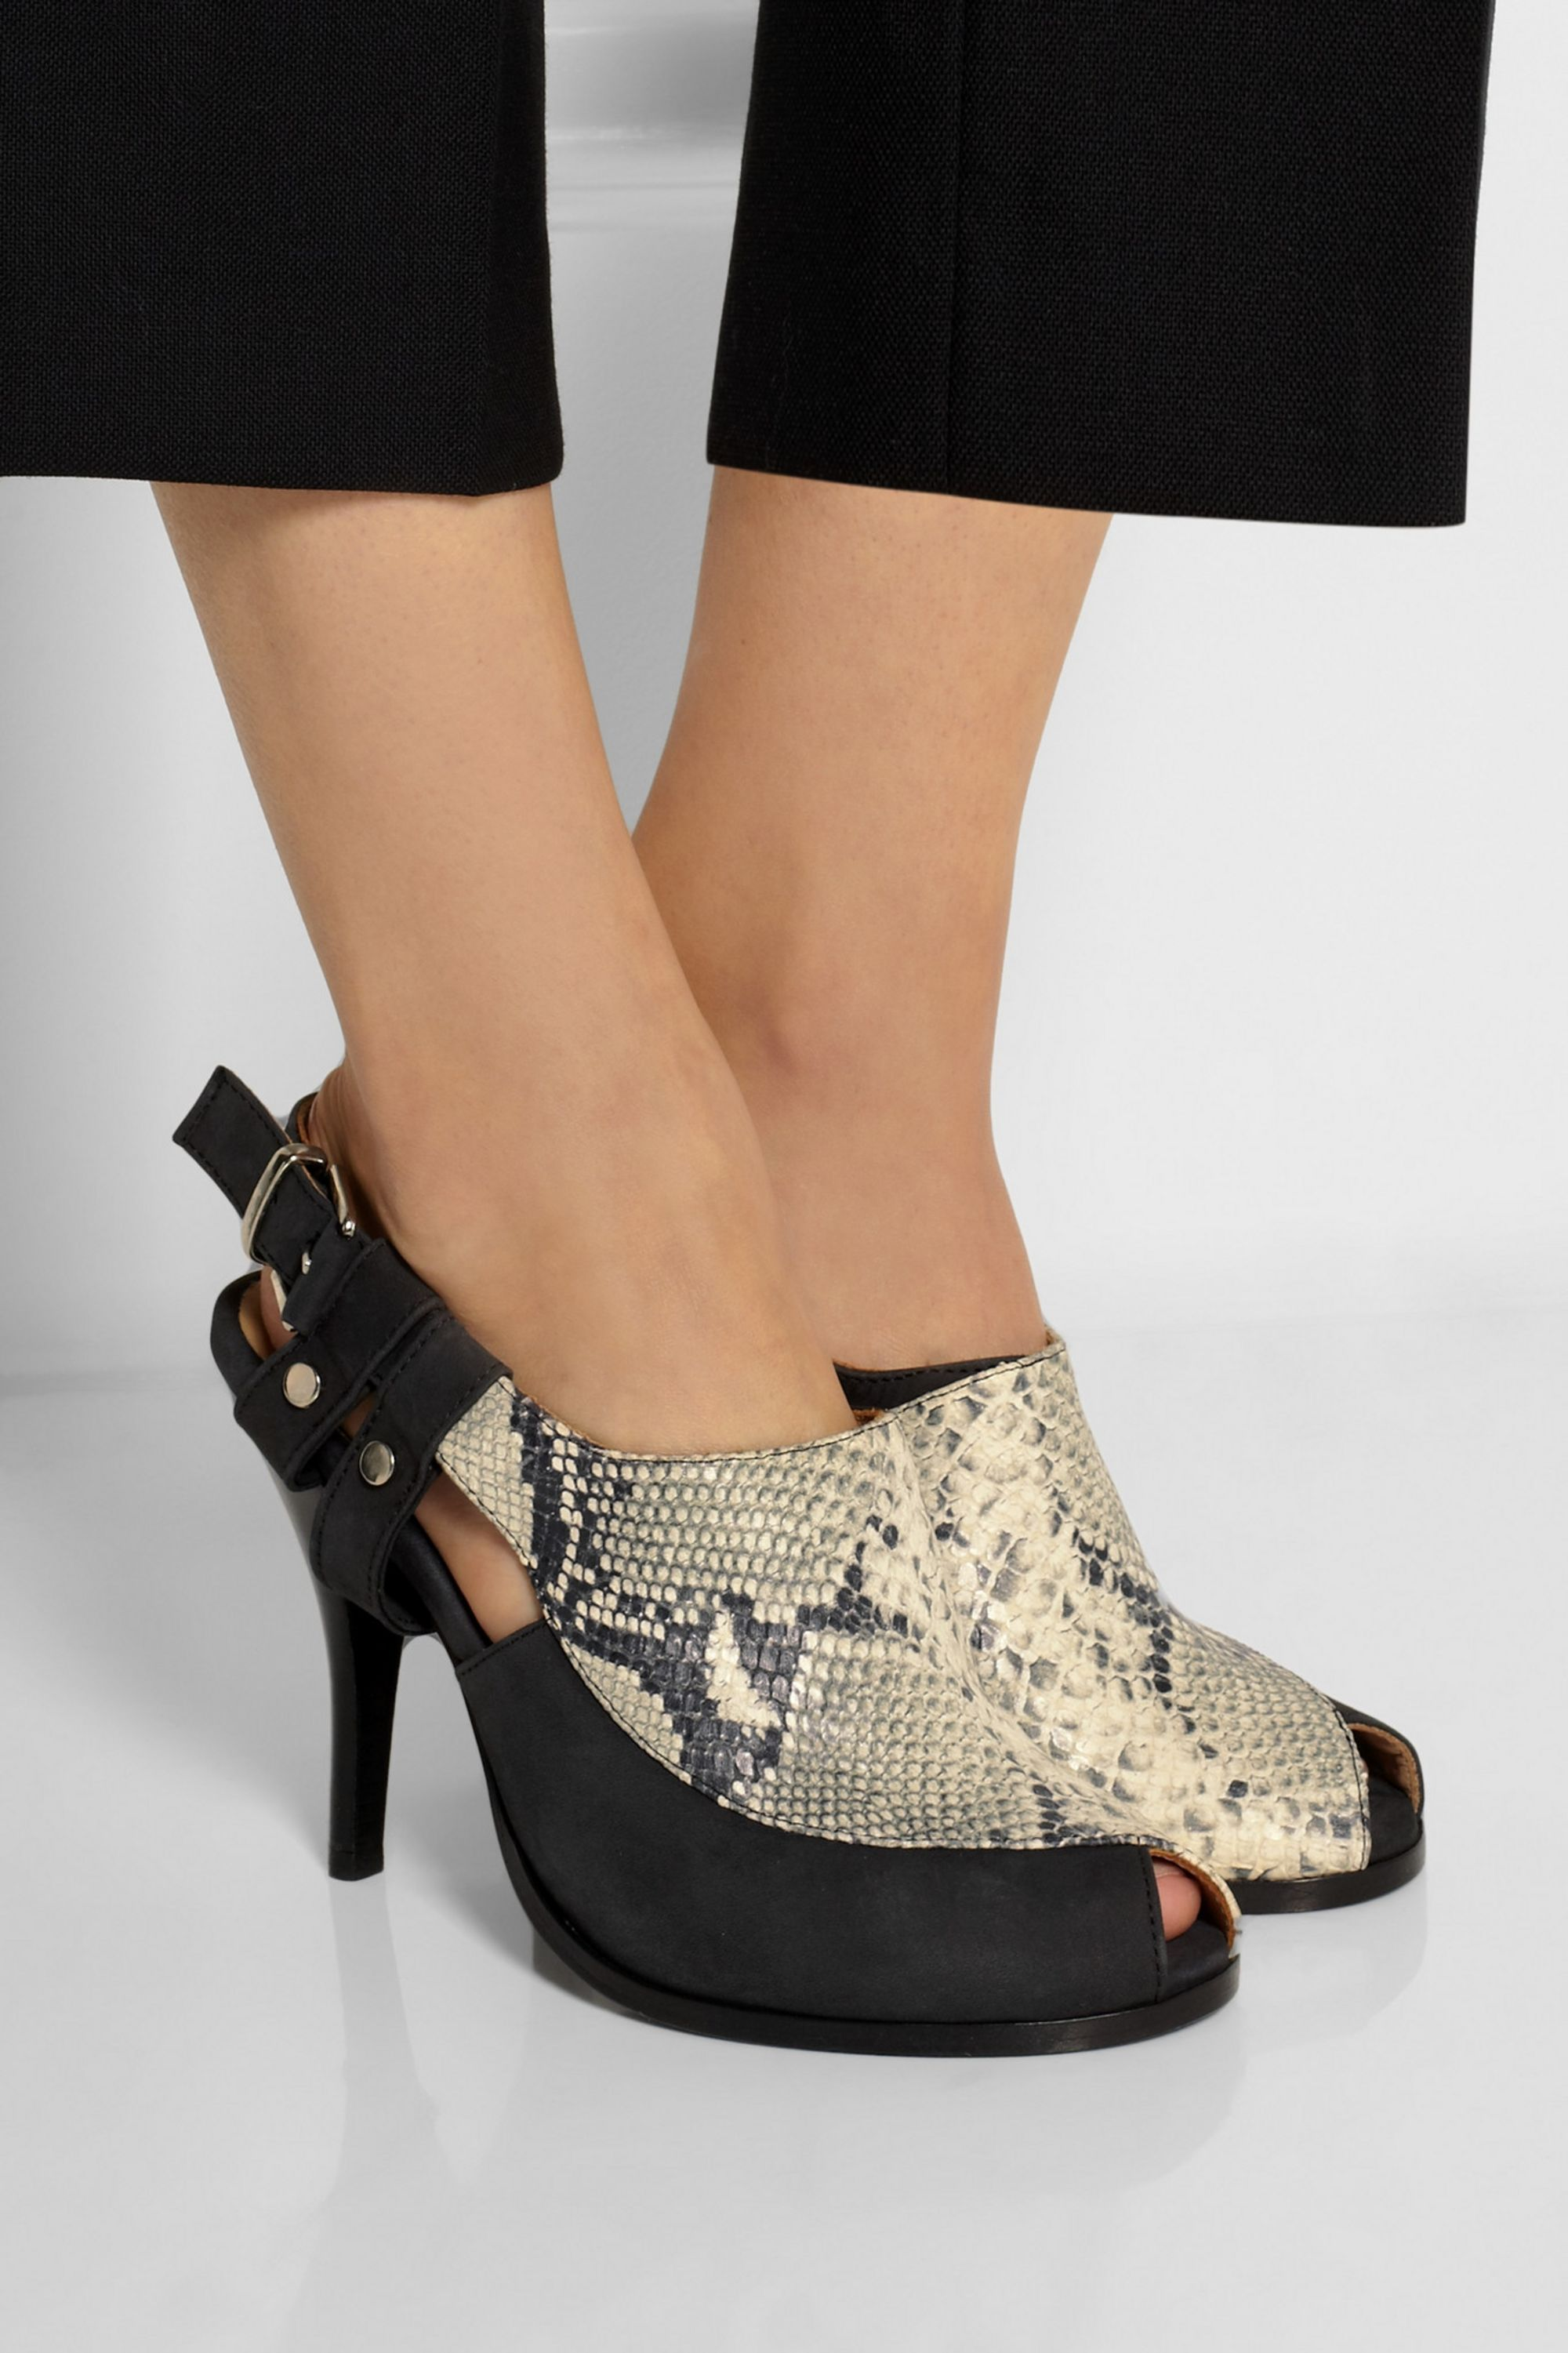 Thakoon Sophie nubuck and snake-effect leather pumps